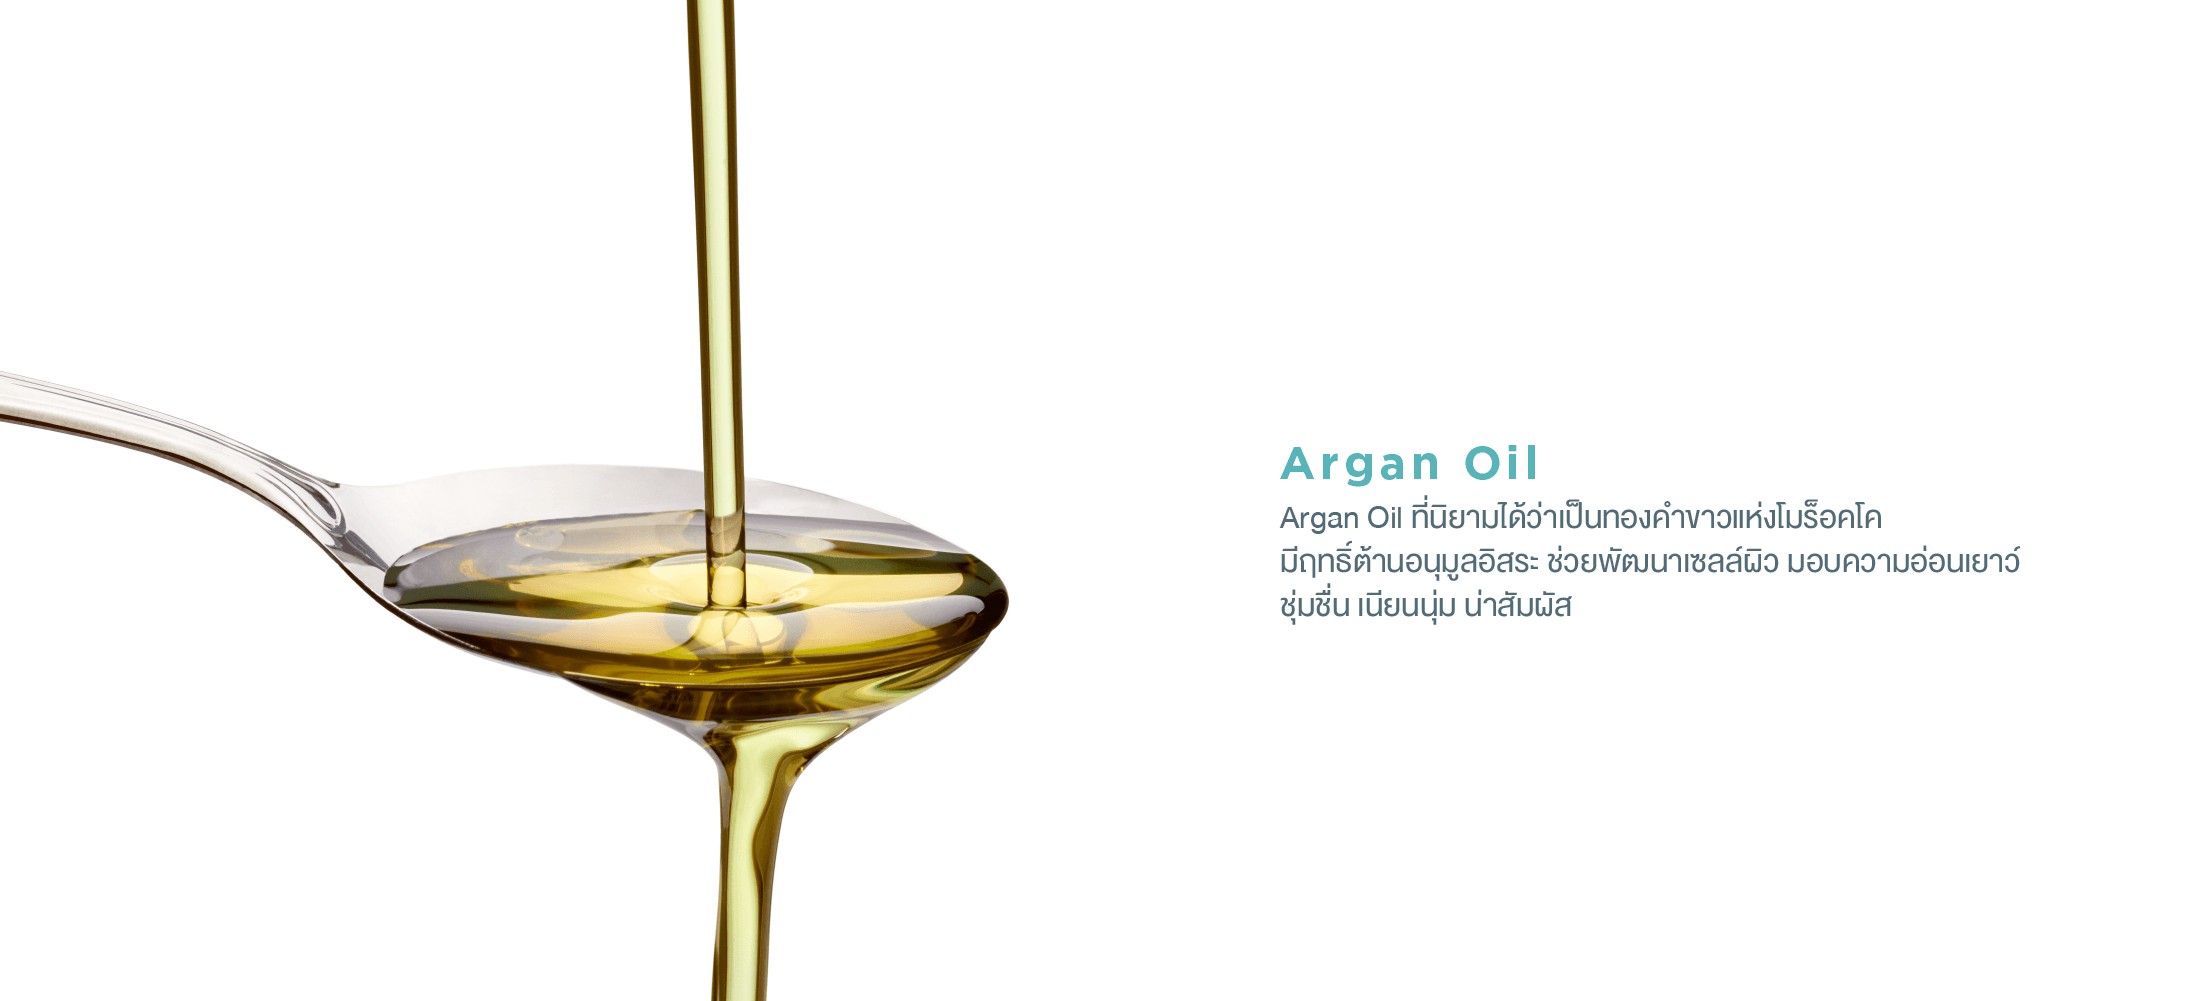 TH-cleansing-oil-banner-03